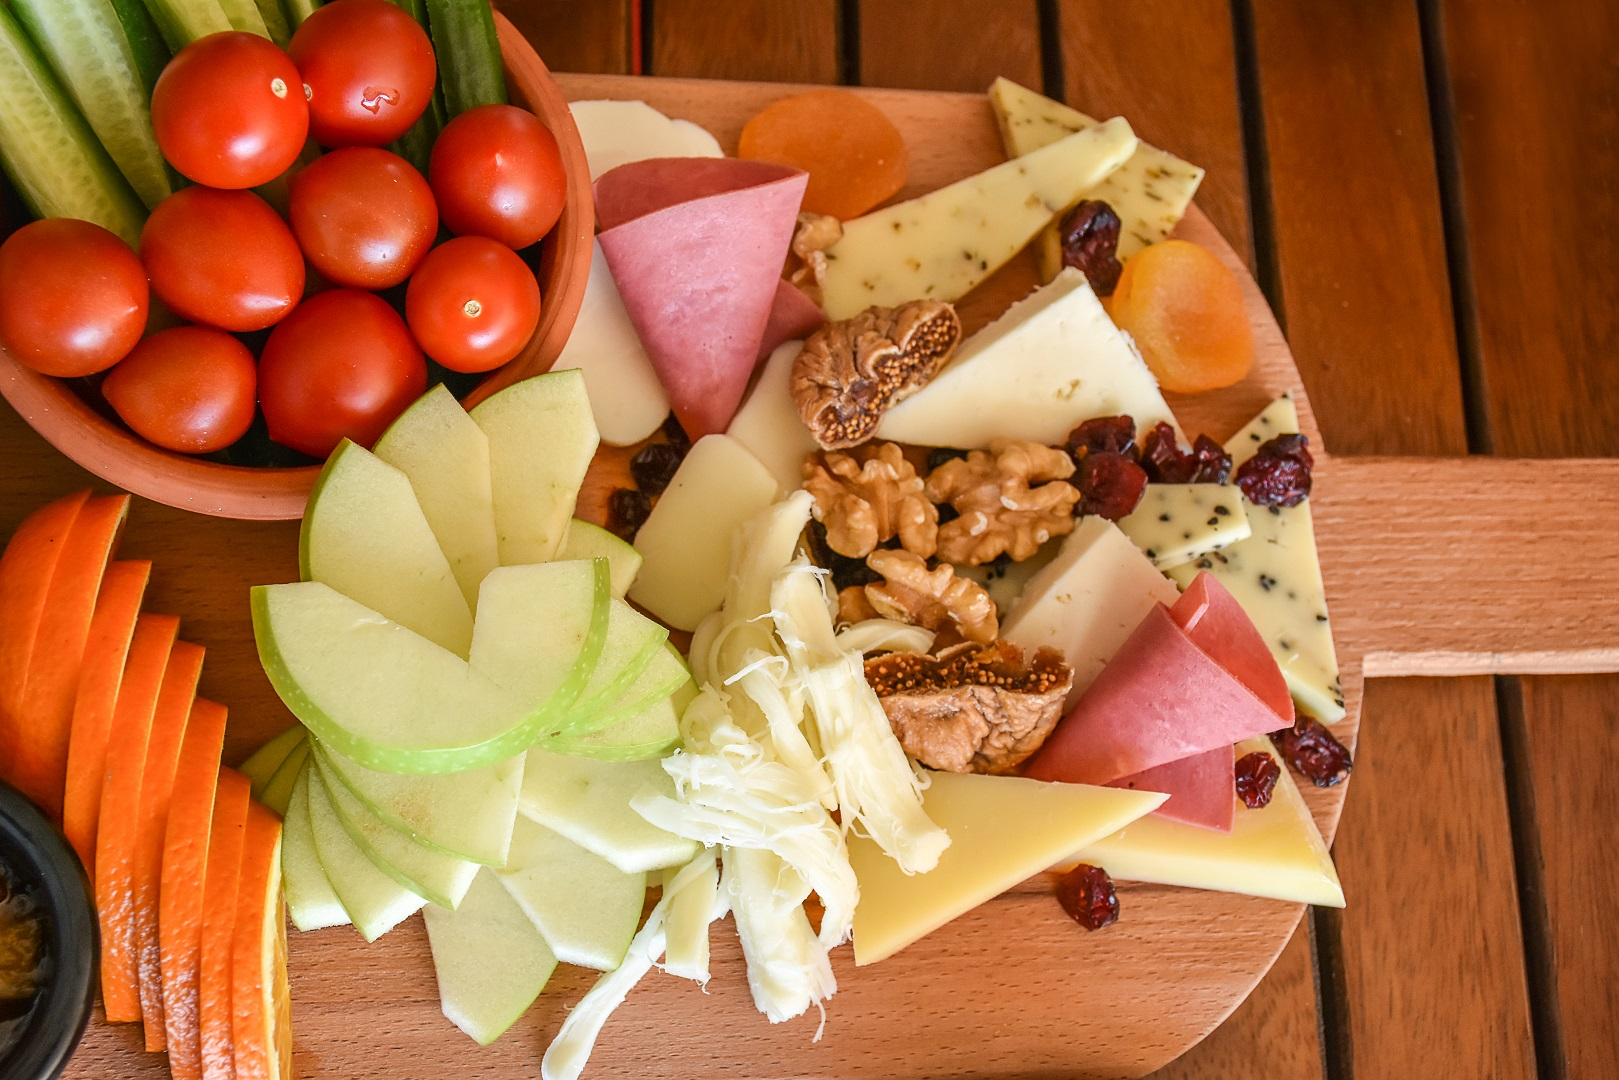 How to Make a Kid-Friendly Snack Board Dinner